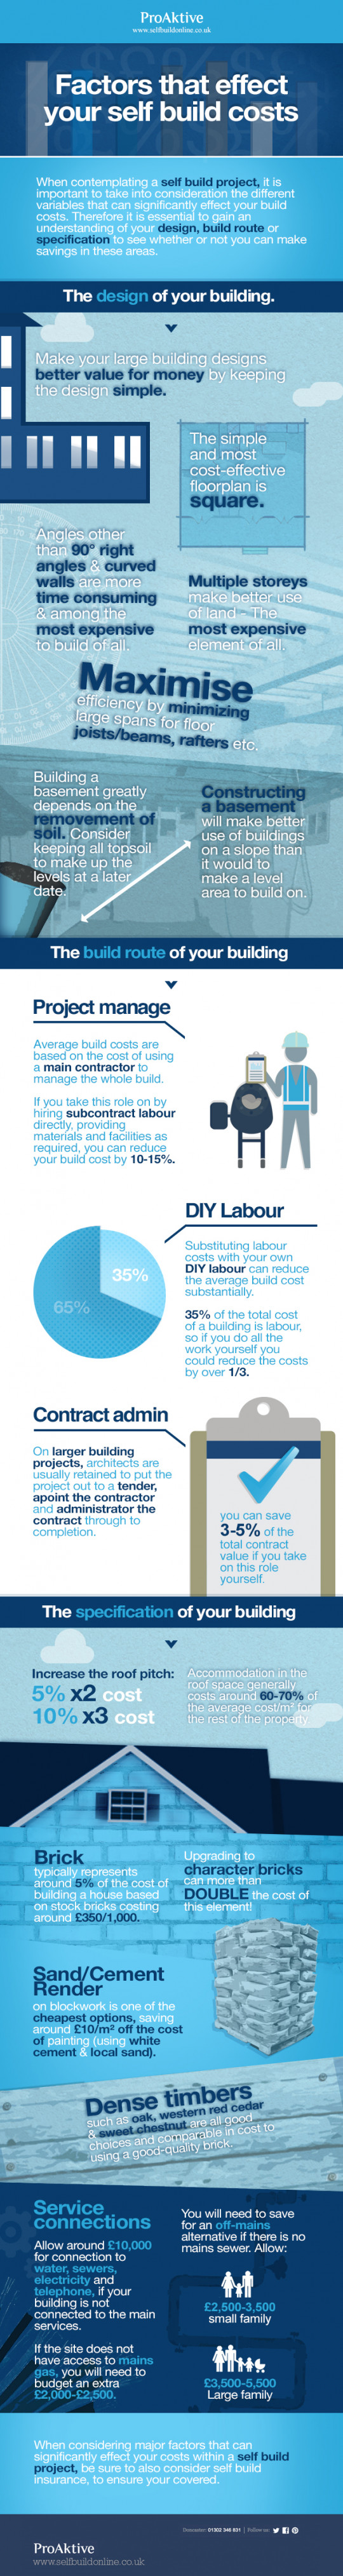 Factors that effect your self build costs